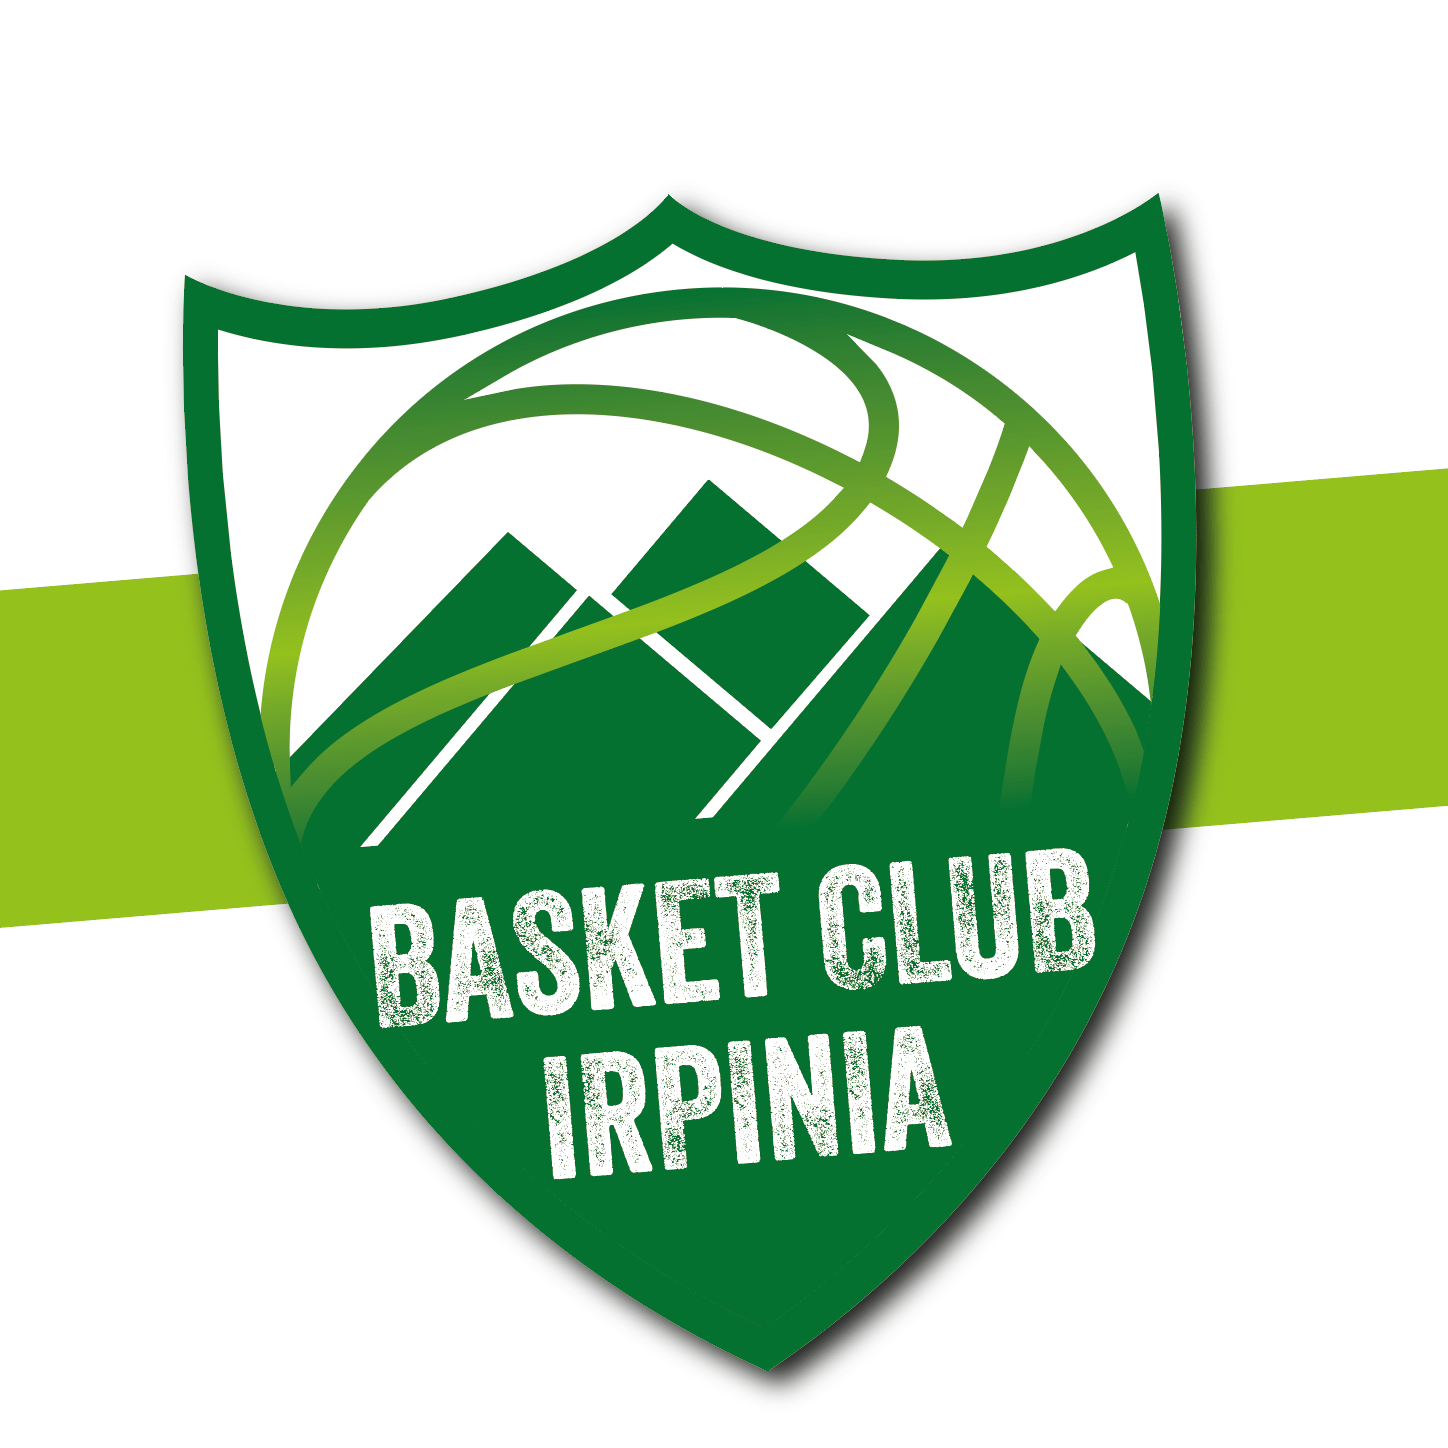 BASKET CLUB IRPINIA